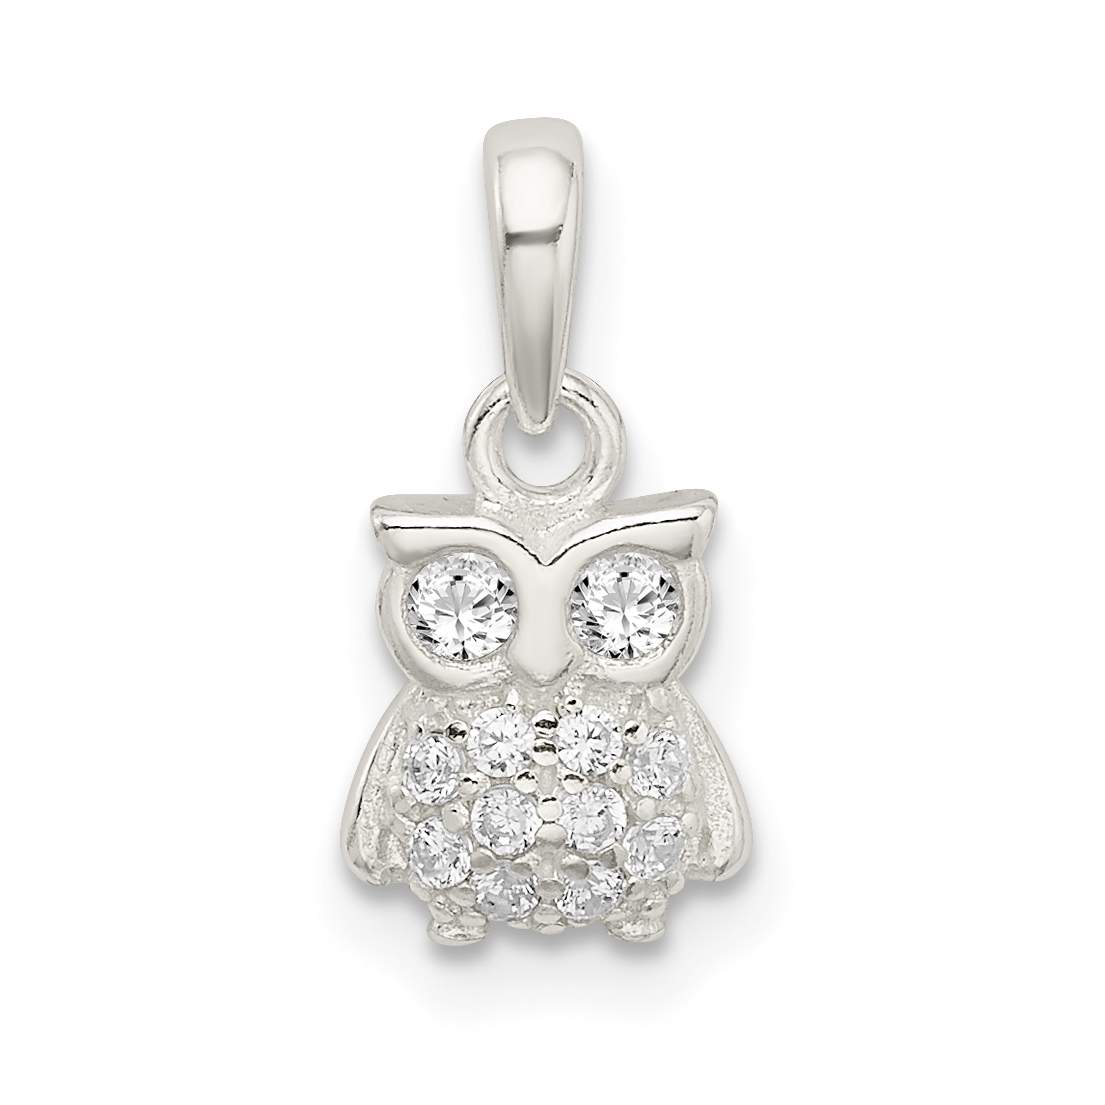 74e489625b91e 925 STERLING SILVER CUBIC ZIRCONIA CZ OWL PENDANT CHARM NECKLACE BIRD FINE  JEWELRY GIFTS FOR WOMEN FOR HER